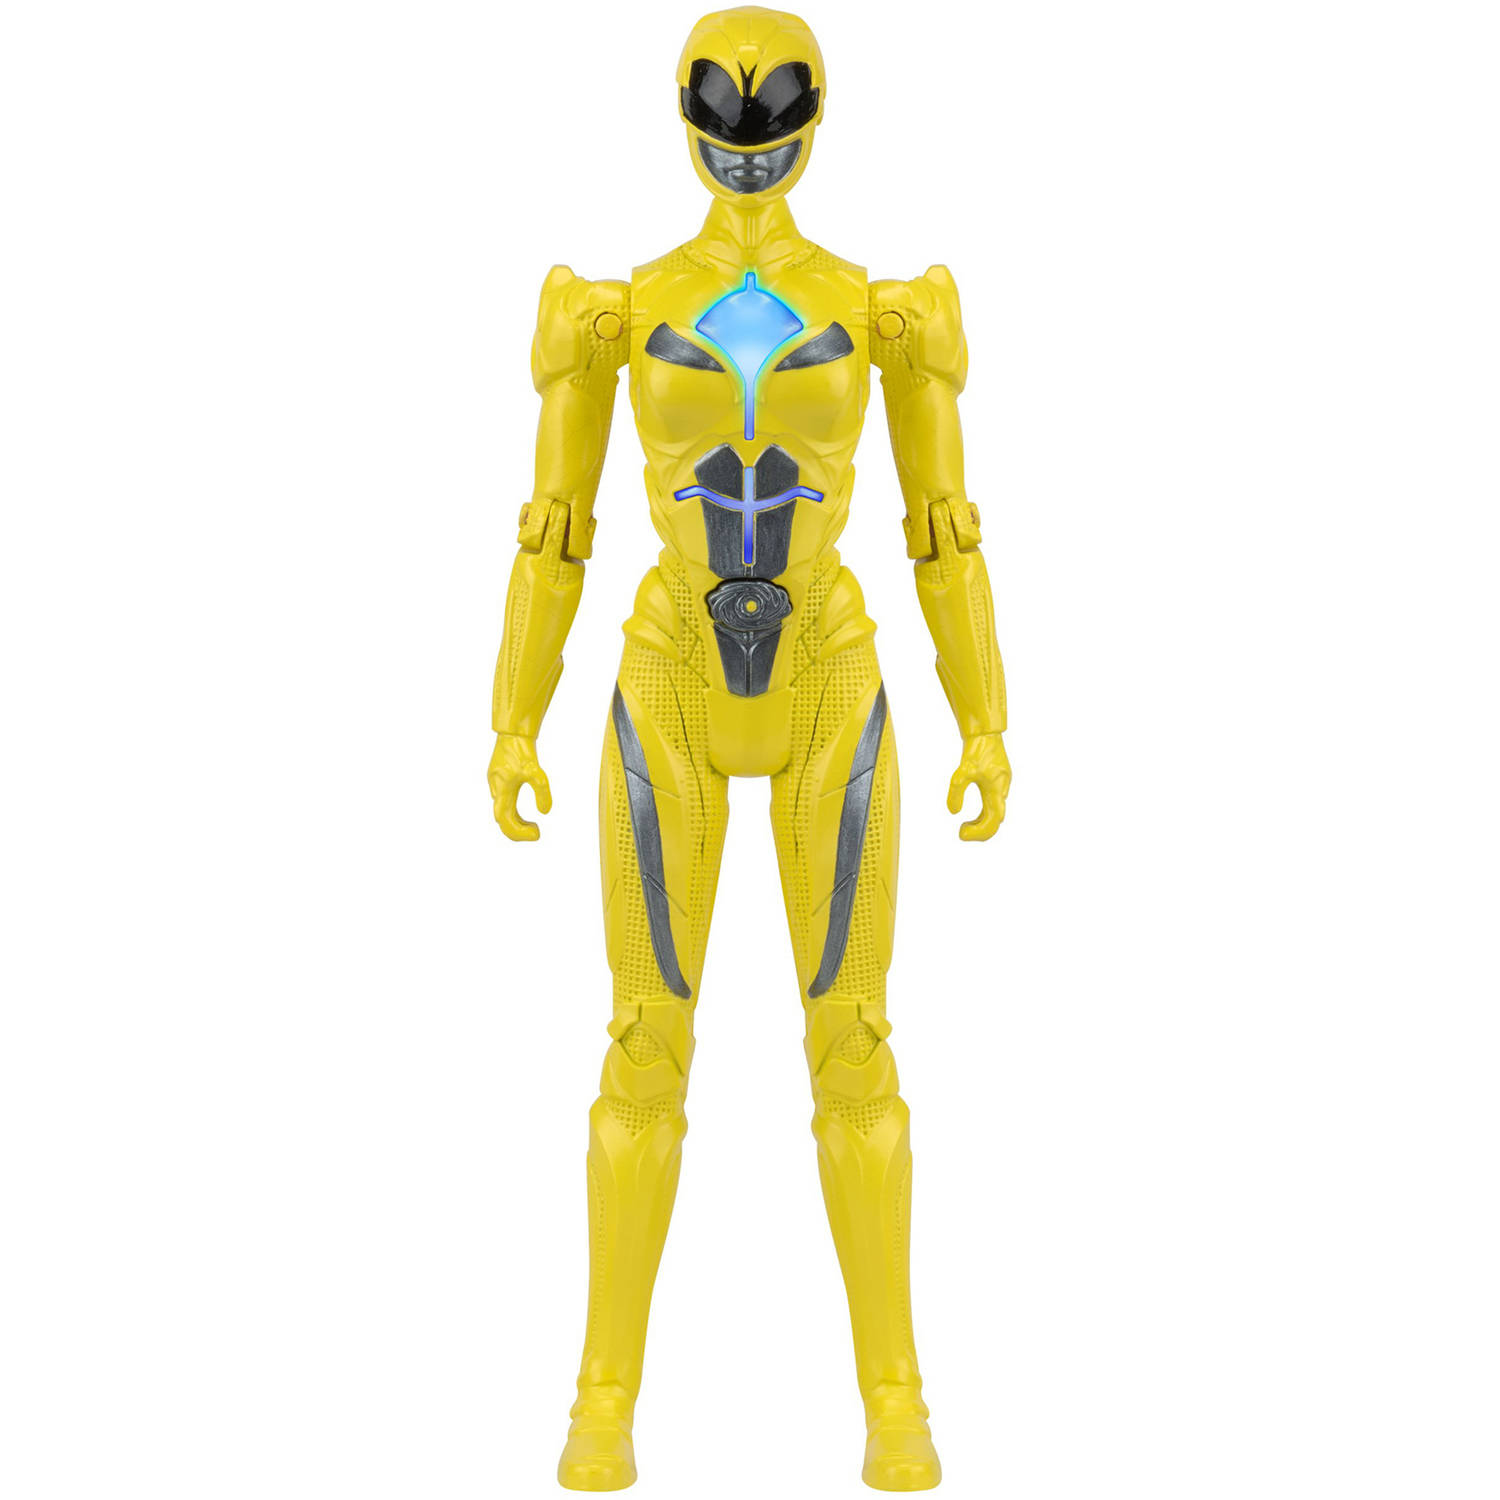 Power Rangers Movie Morphin Power, Yellow Ranger Figure by Bandai